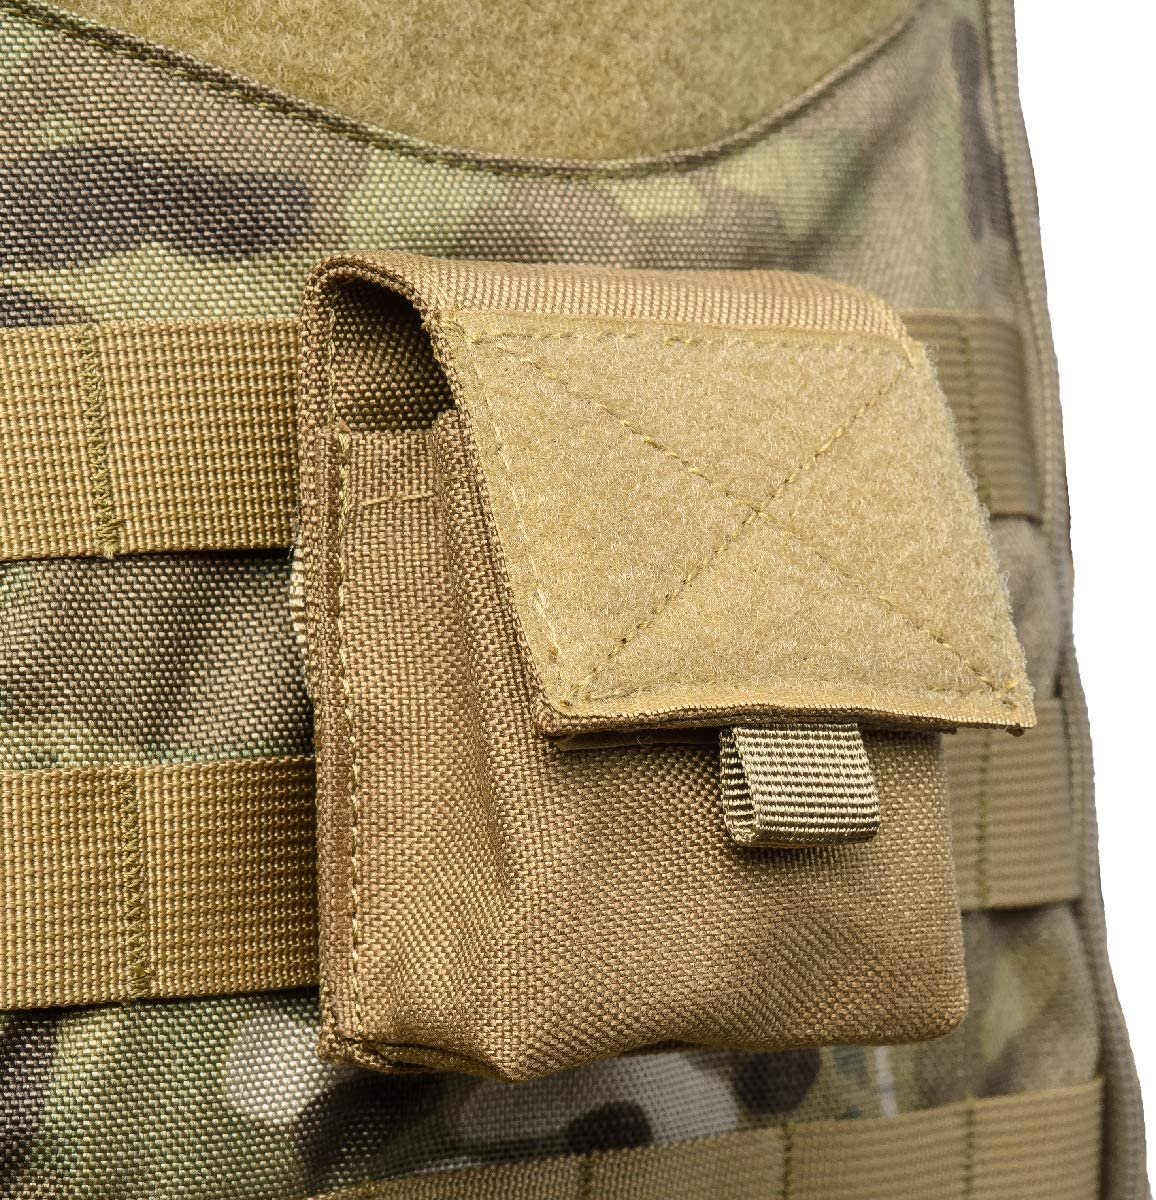 TRIWONDER Tactical Molle Pouch Waist Bags Pack Small EDC Utility Pouch Military Bag Case Card Holder Lighter Slot Mini Tactical Sundries Storage Bag